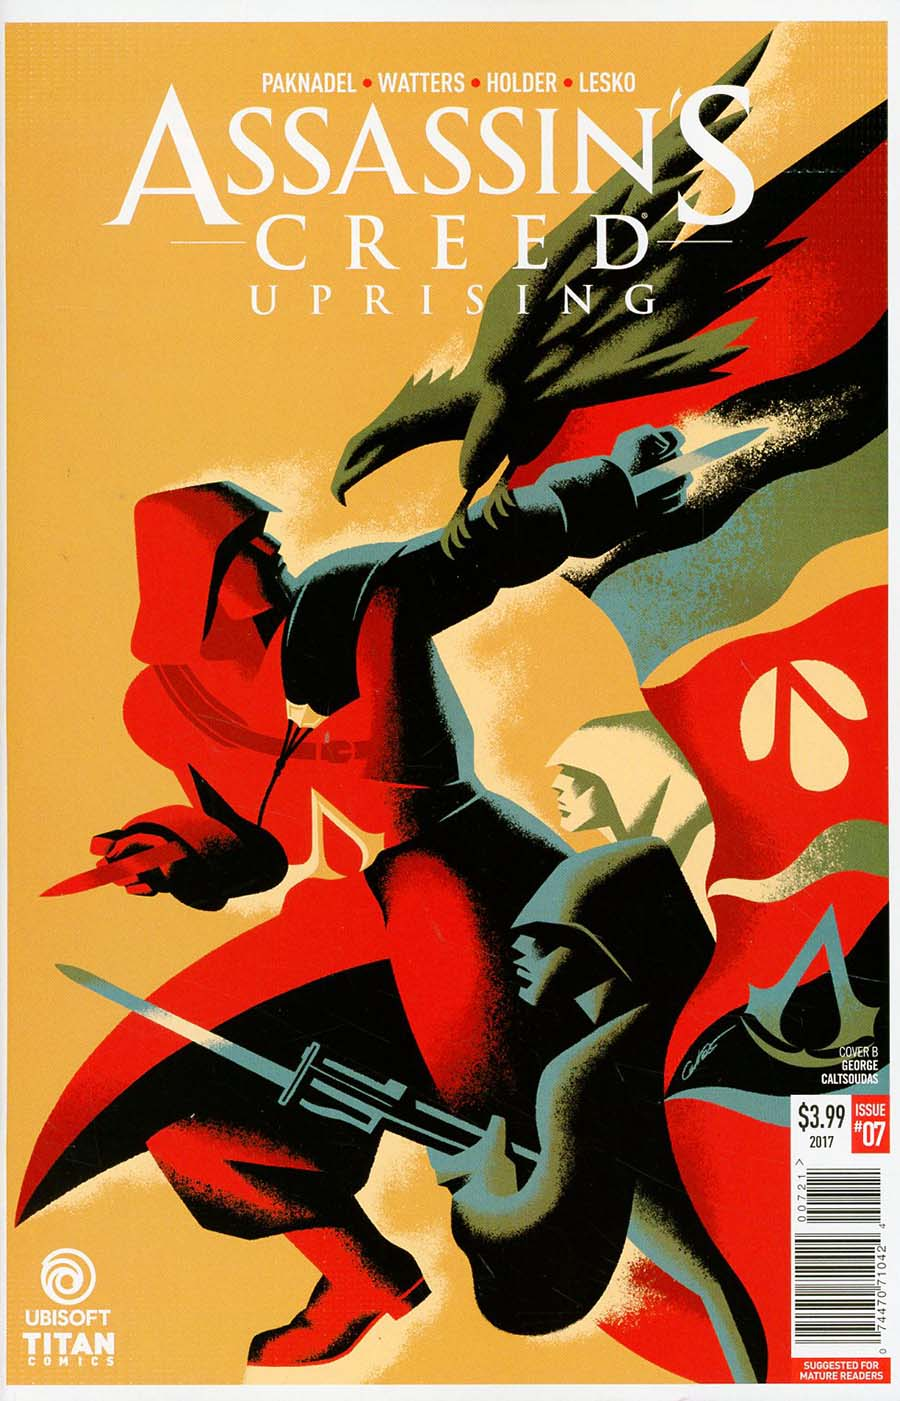 Assassins Creed Uprising #7 Cover A Regular Sunsetagain Cover